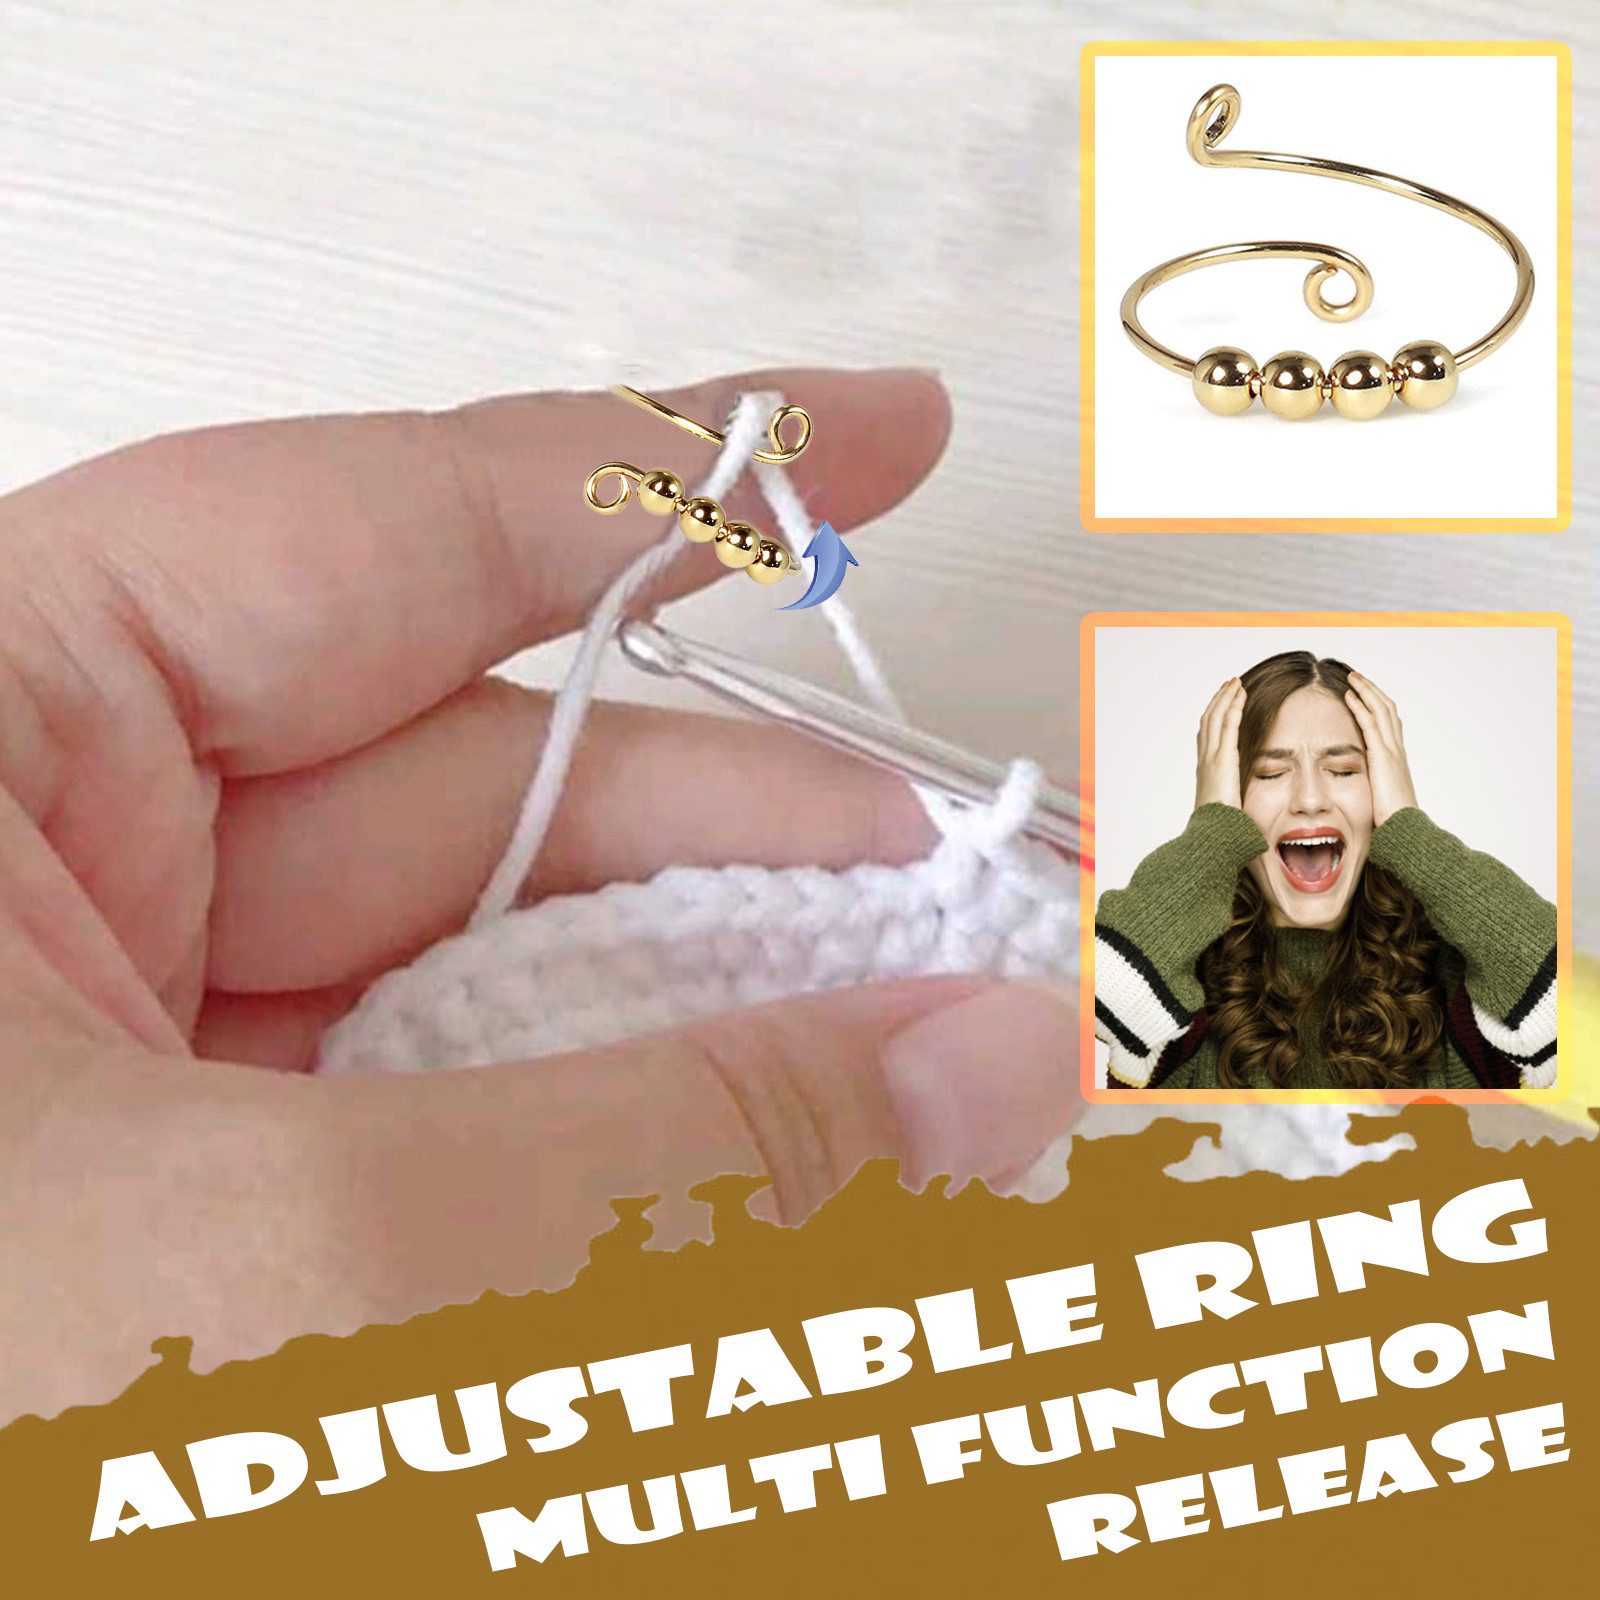 Toy Ring-Beads Fidget-Ring Freely Stress Spiral-Anxiety Rotate Reliever Fingertip Knitting img4